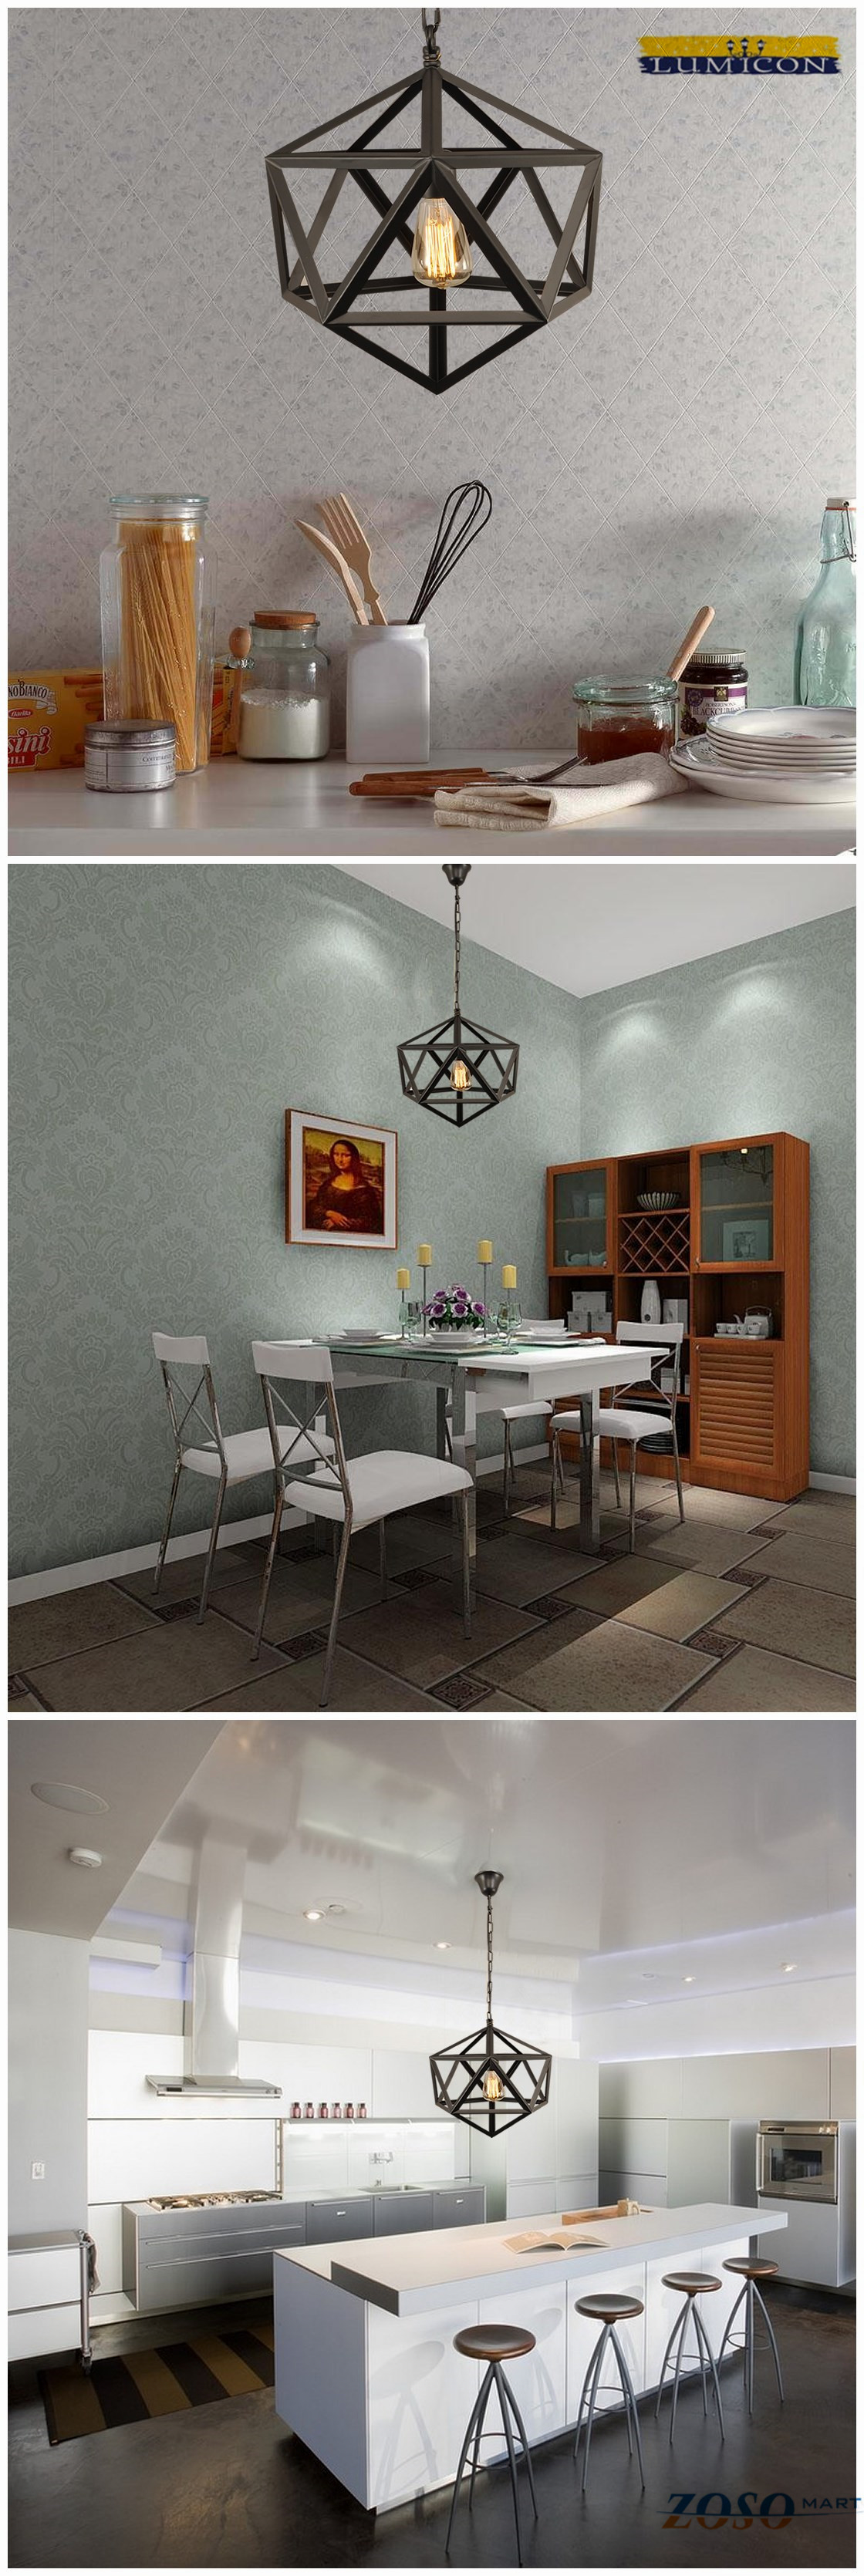 Geometric Metal Chandelier-Home lighting: Perfect chandelier lighting for your kitchen island, or dining room. This is an amazing chandelier that will be the focal point of any room! http://www.zosomart.com/home-living/lamps-lighting/020501-01509.html